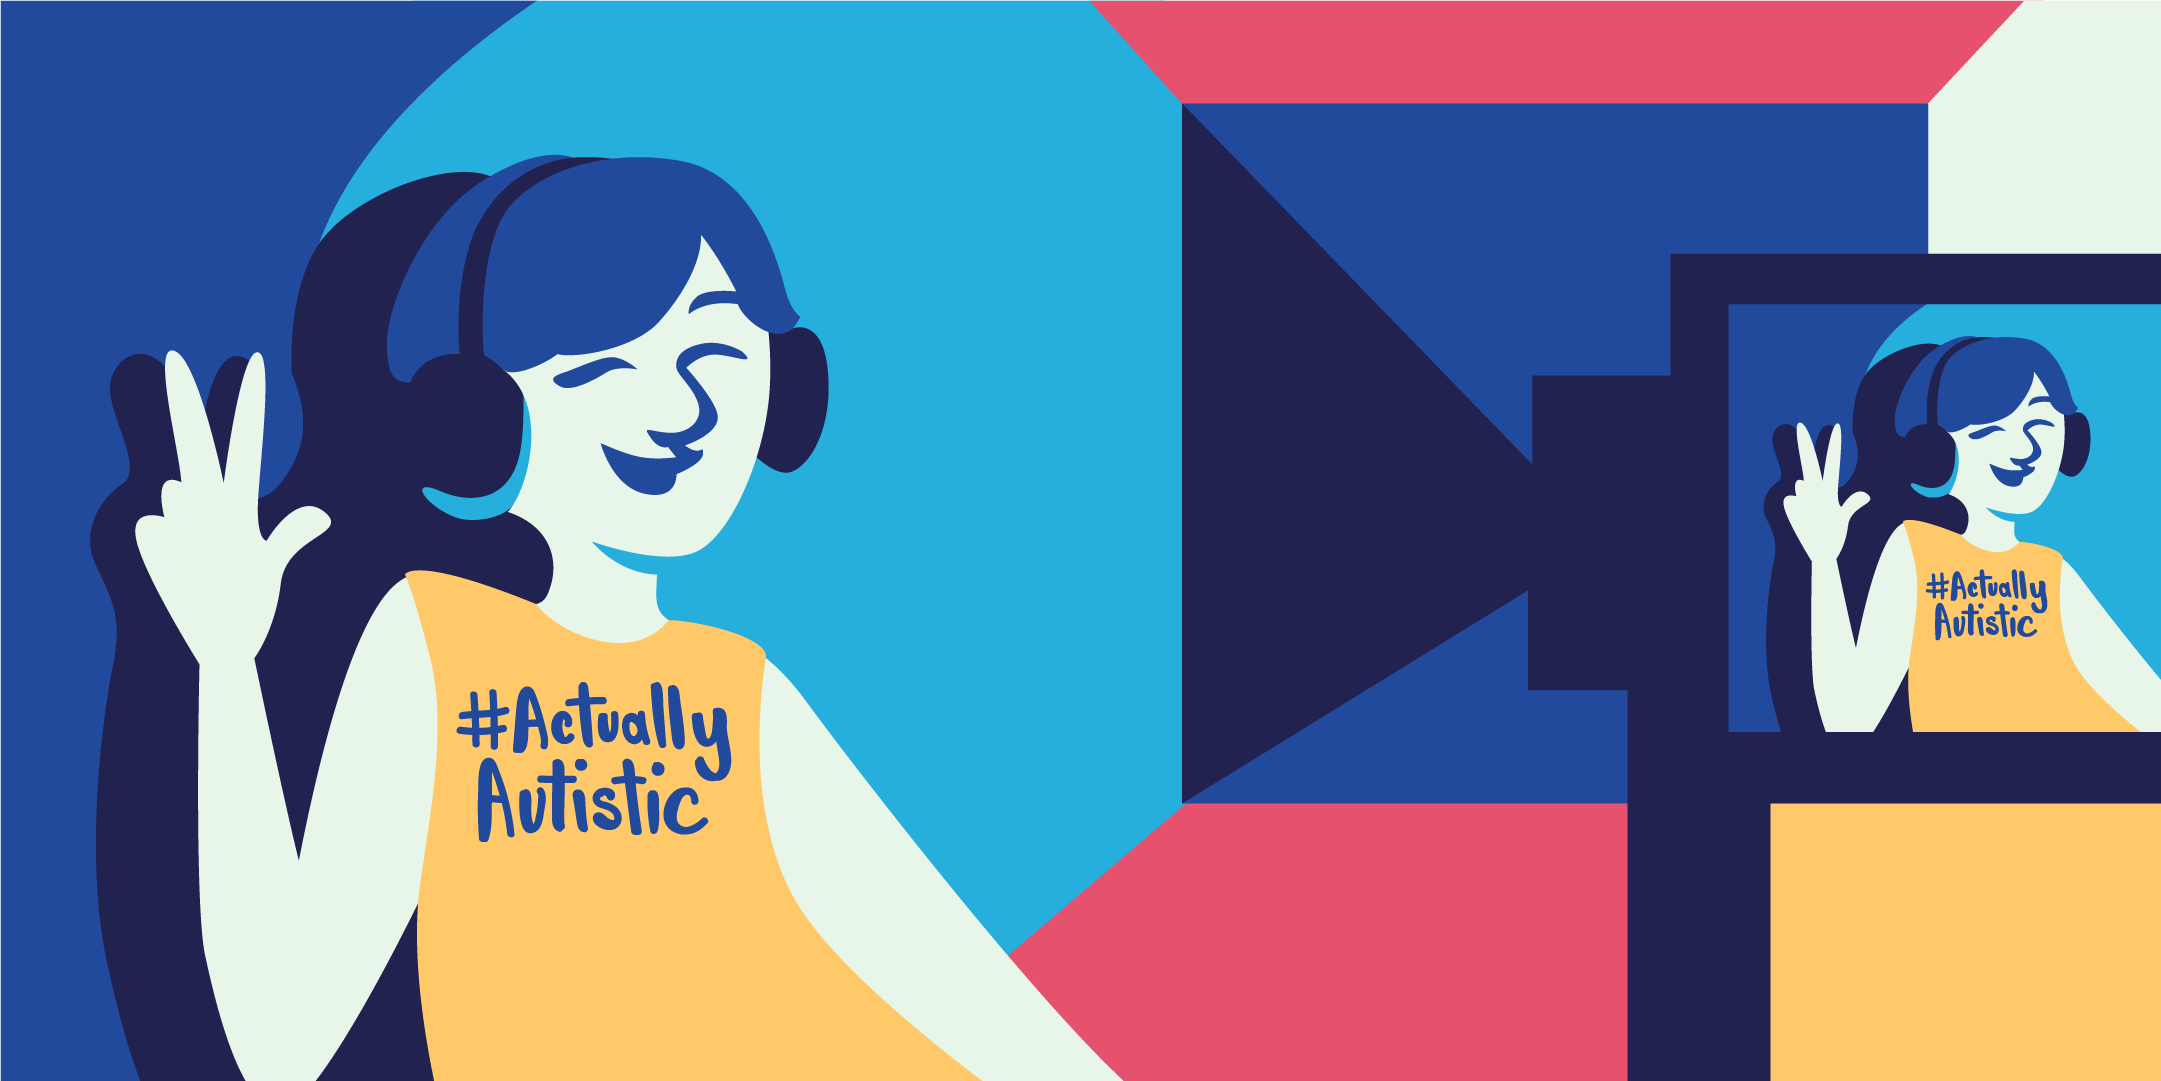 A colourful illustration of a person posing with their hands up in a peace symbol wearing a shirt that says #ActuallyAutistic